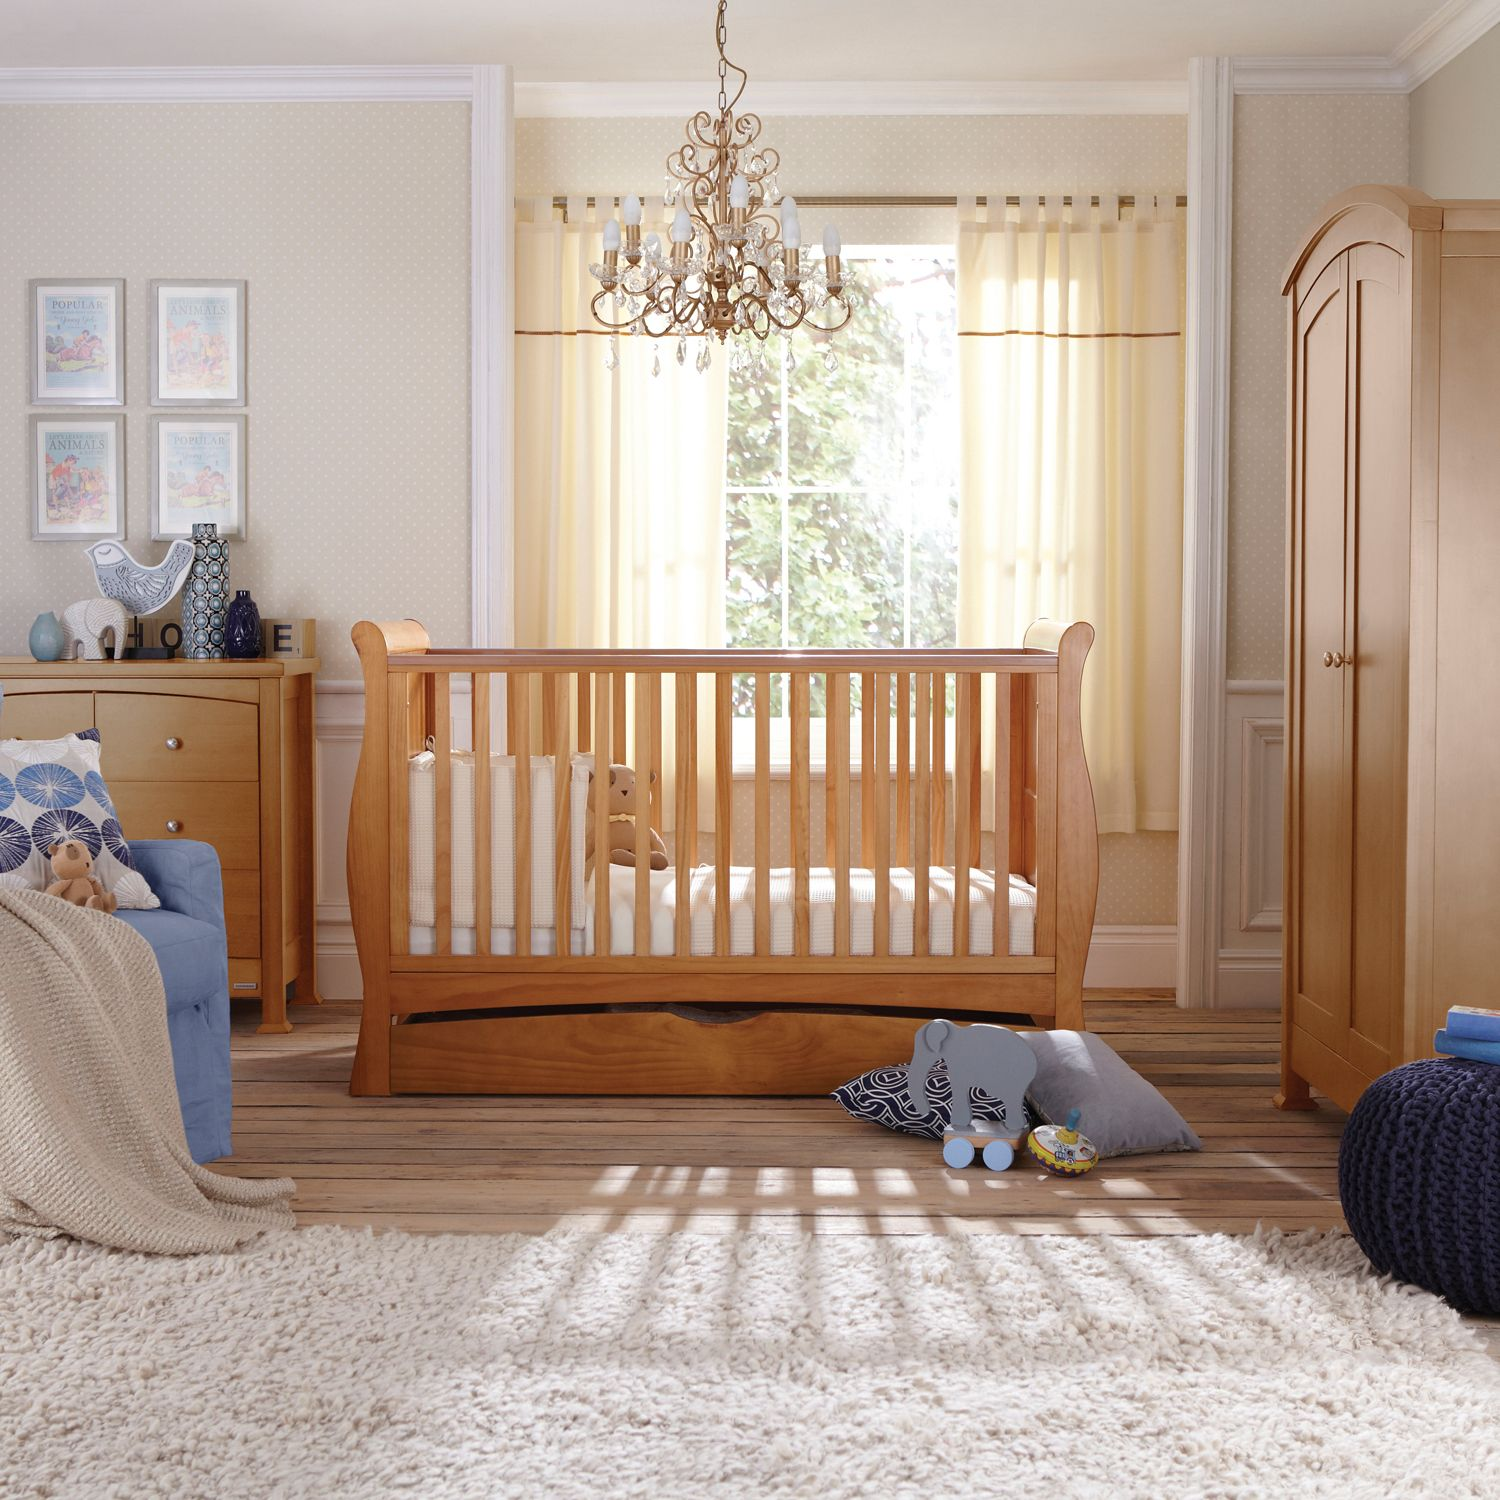 Beau Bailey 3 Piece Nursery Furniture Set